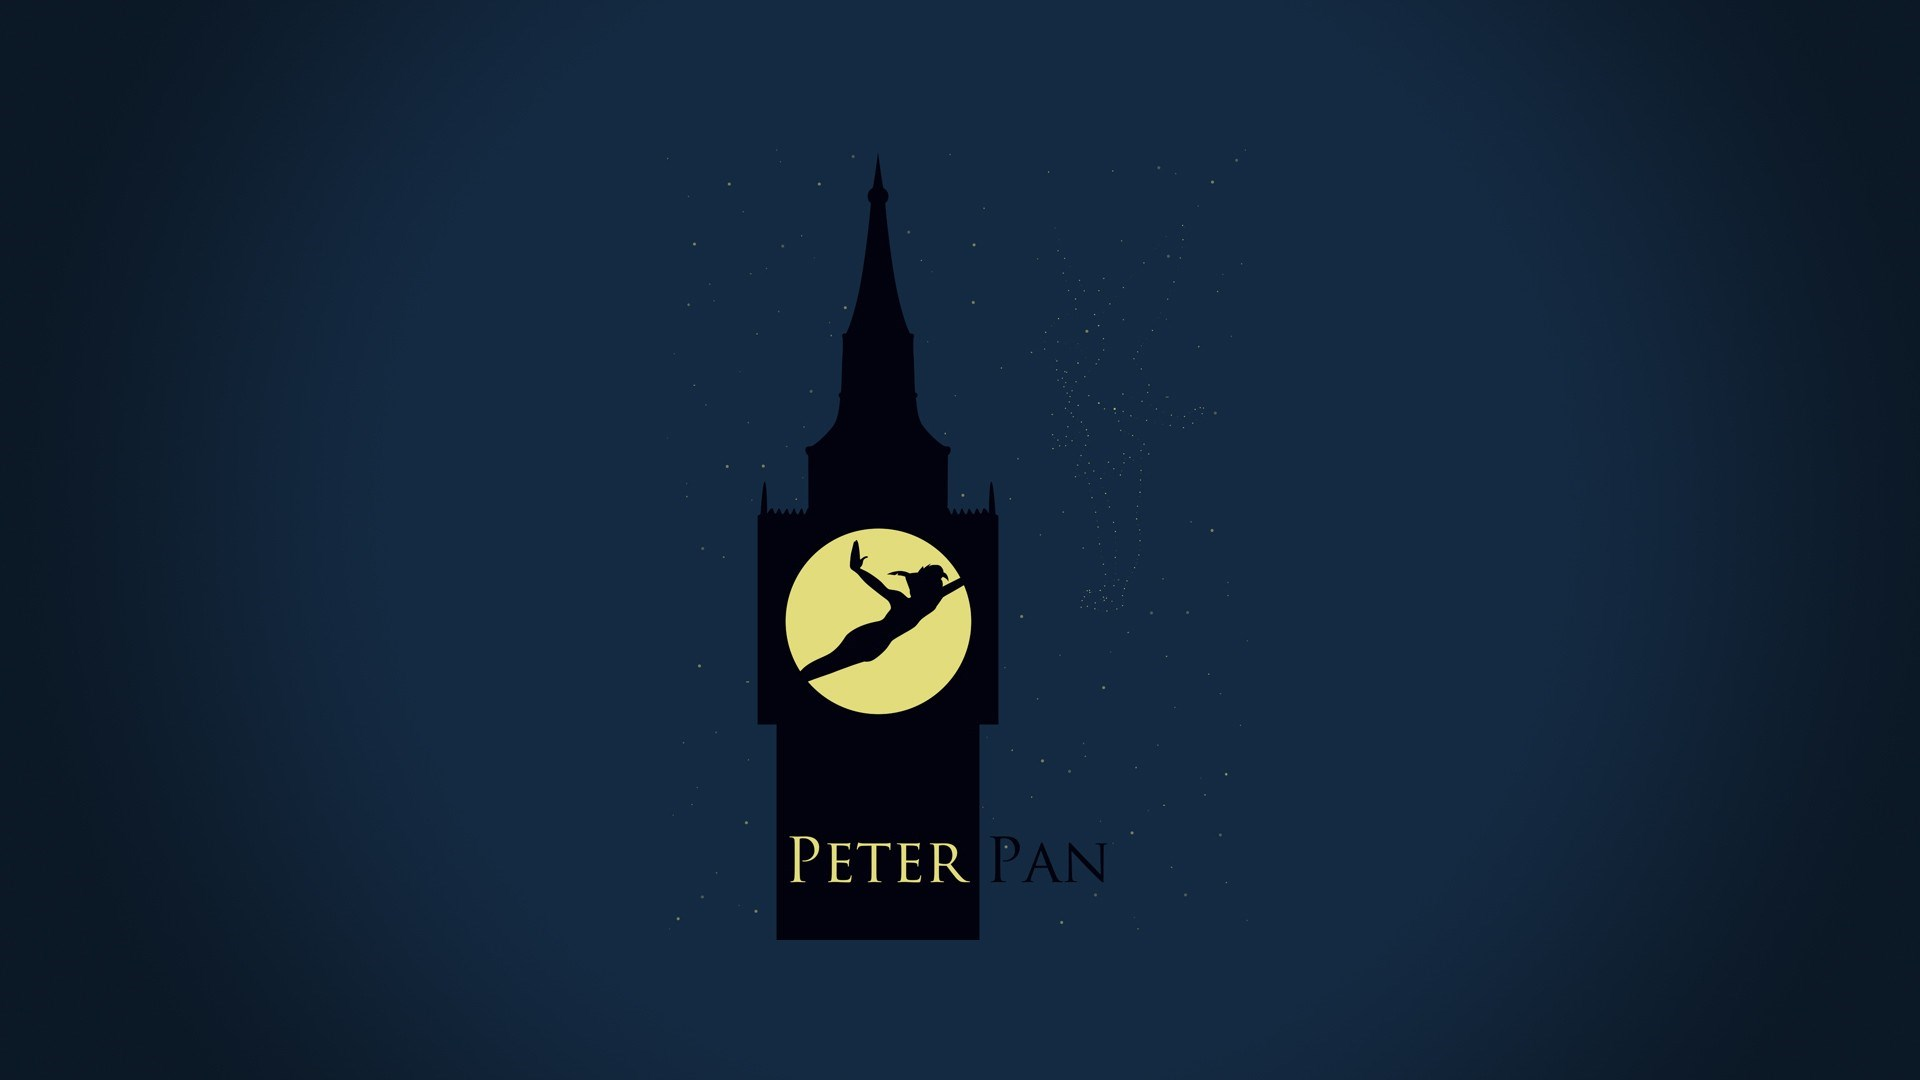 Peter Pan Art